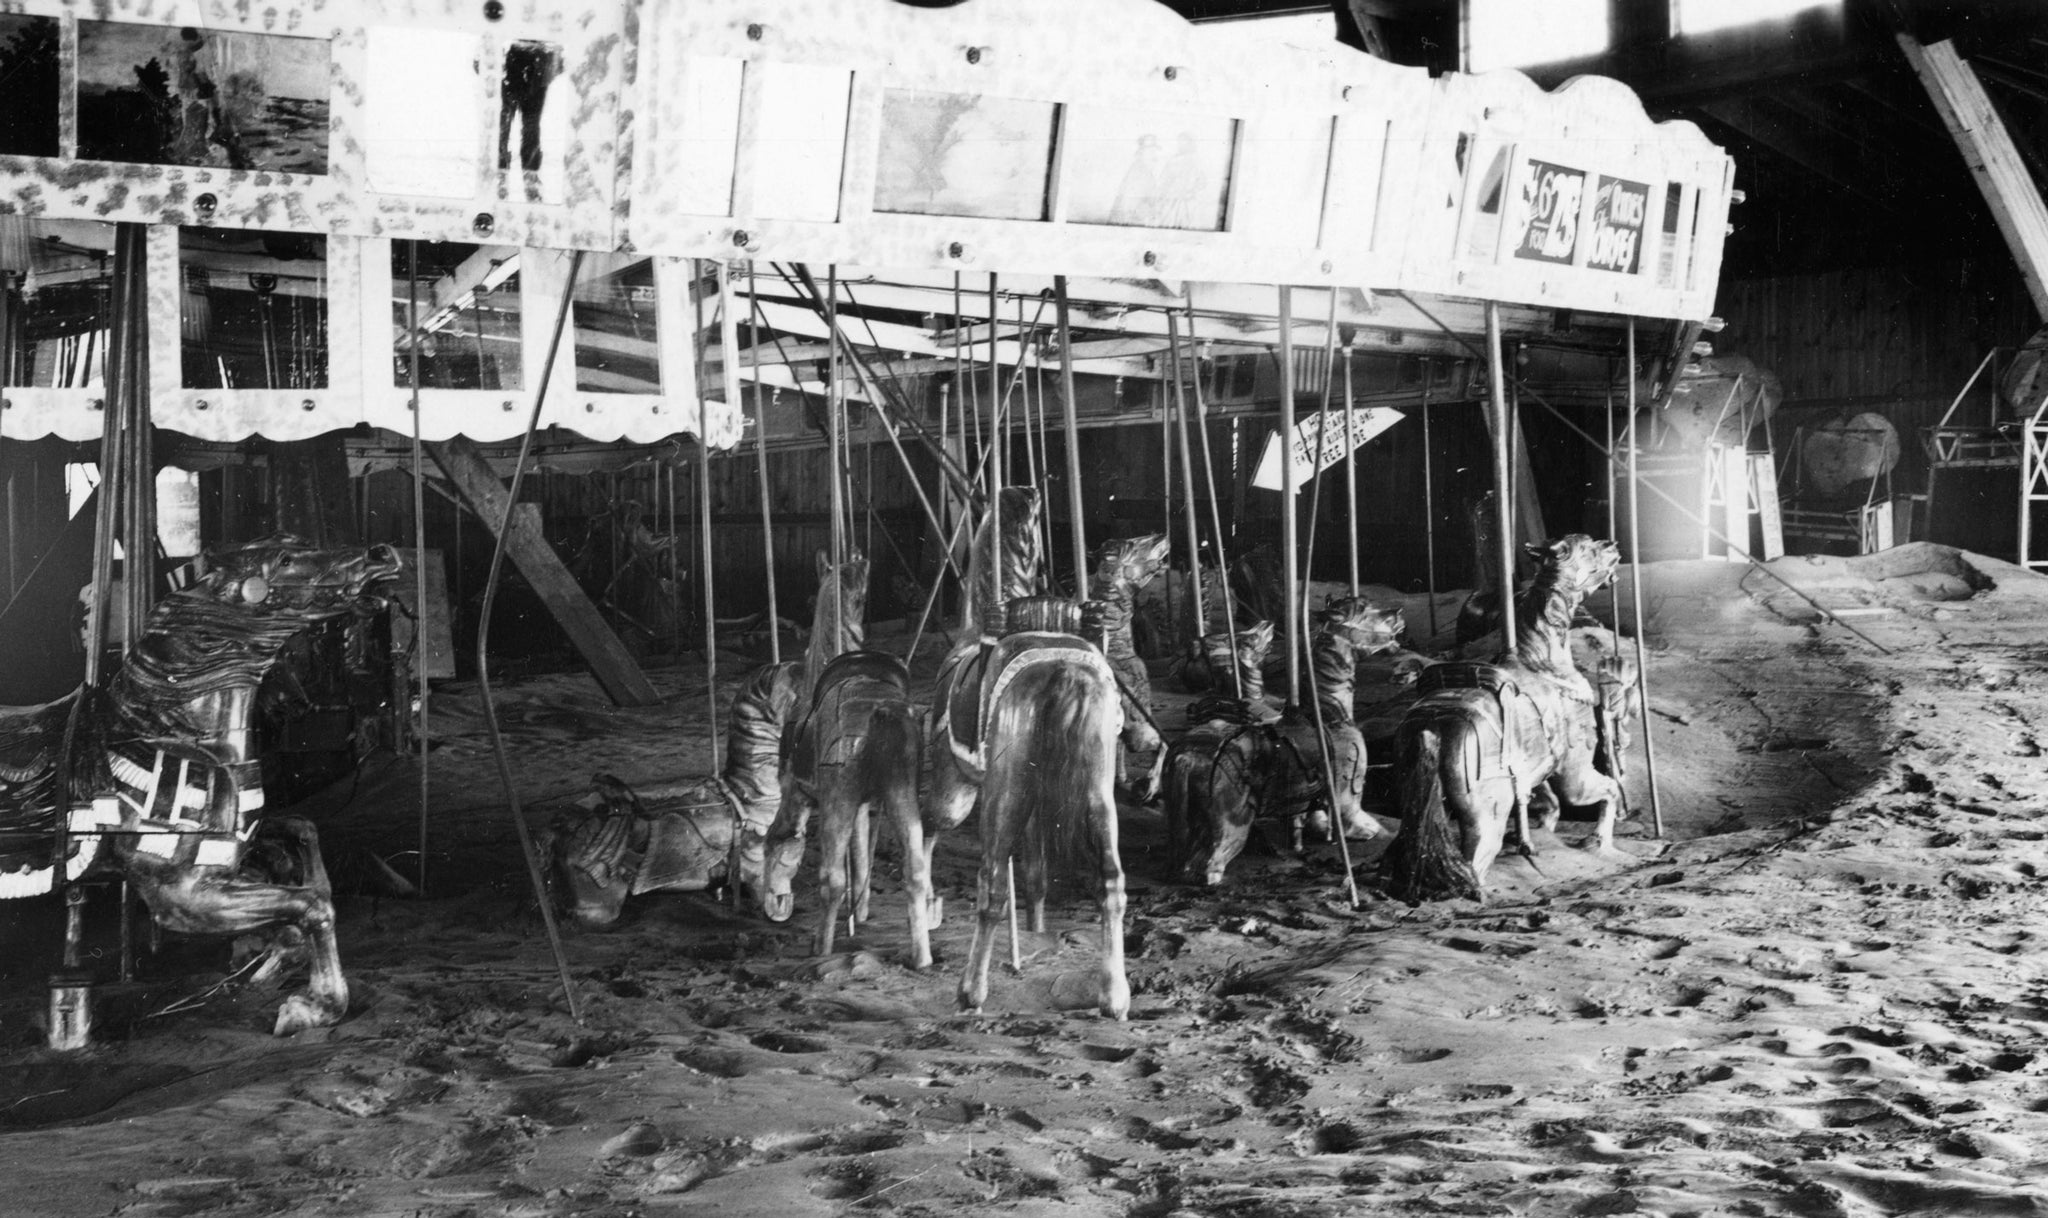 Merrimack Park carousel in the aftermath of the Great Flood of 1936. The amusement park operated along the Merrimack River between 1921 and 1936. -- Methuen Historical Commission